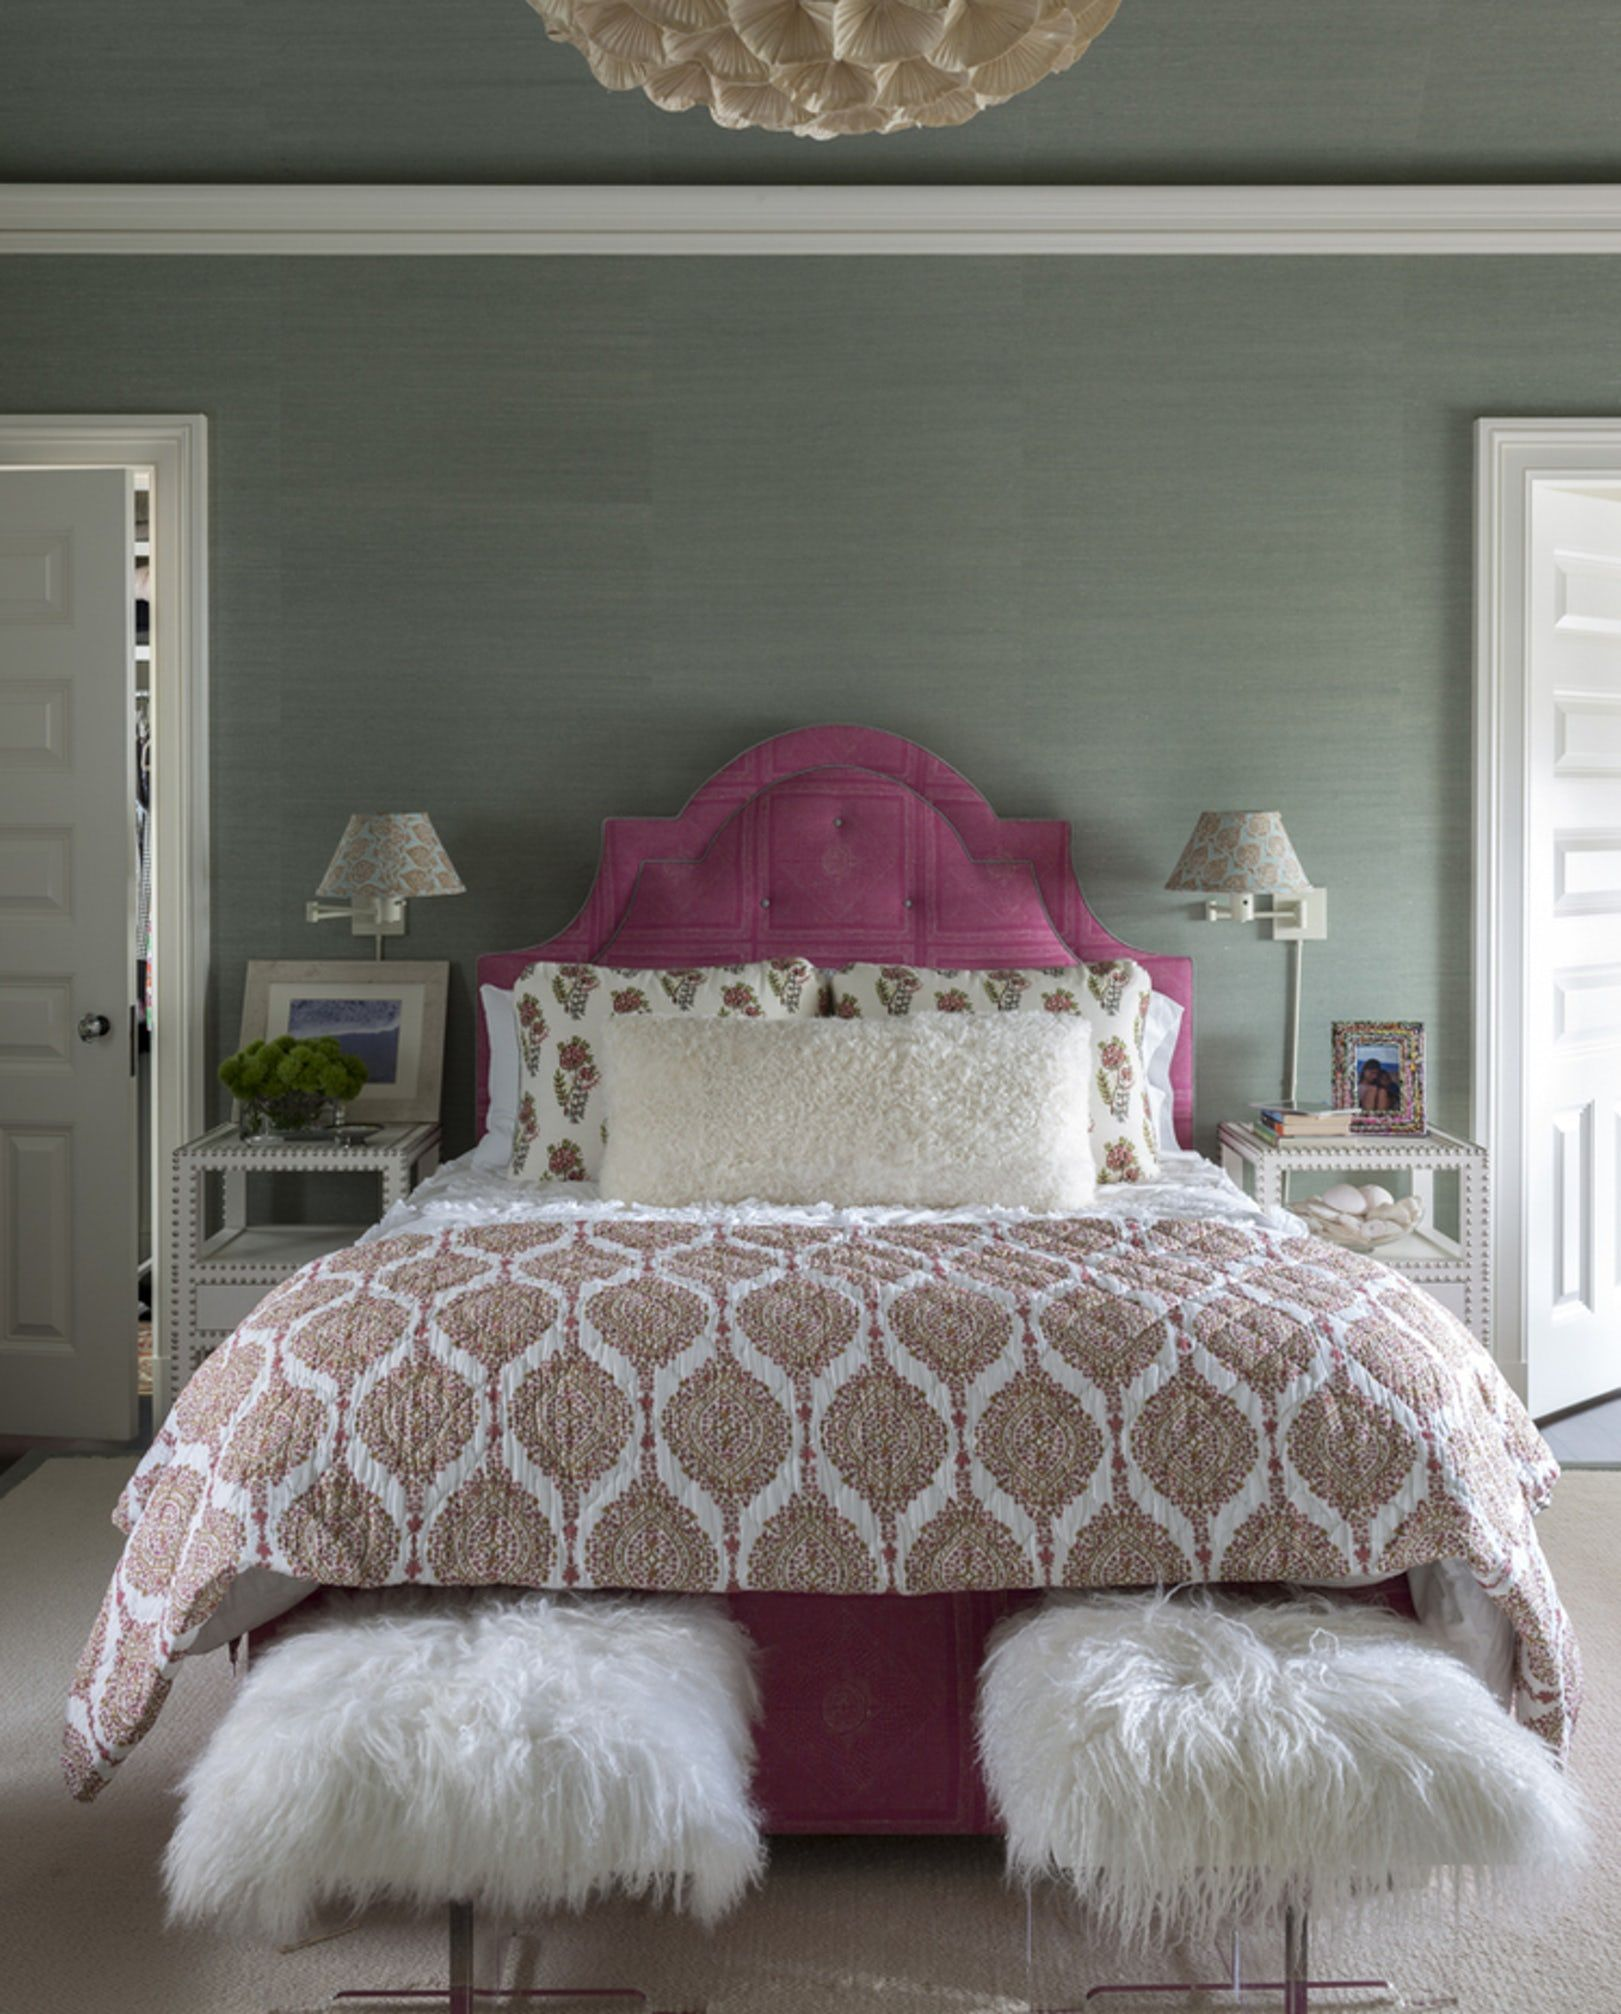 15 creative girls room ideas how to decorate a girl\u0027s bedroom